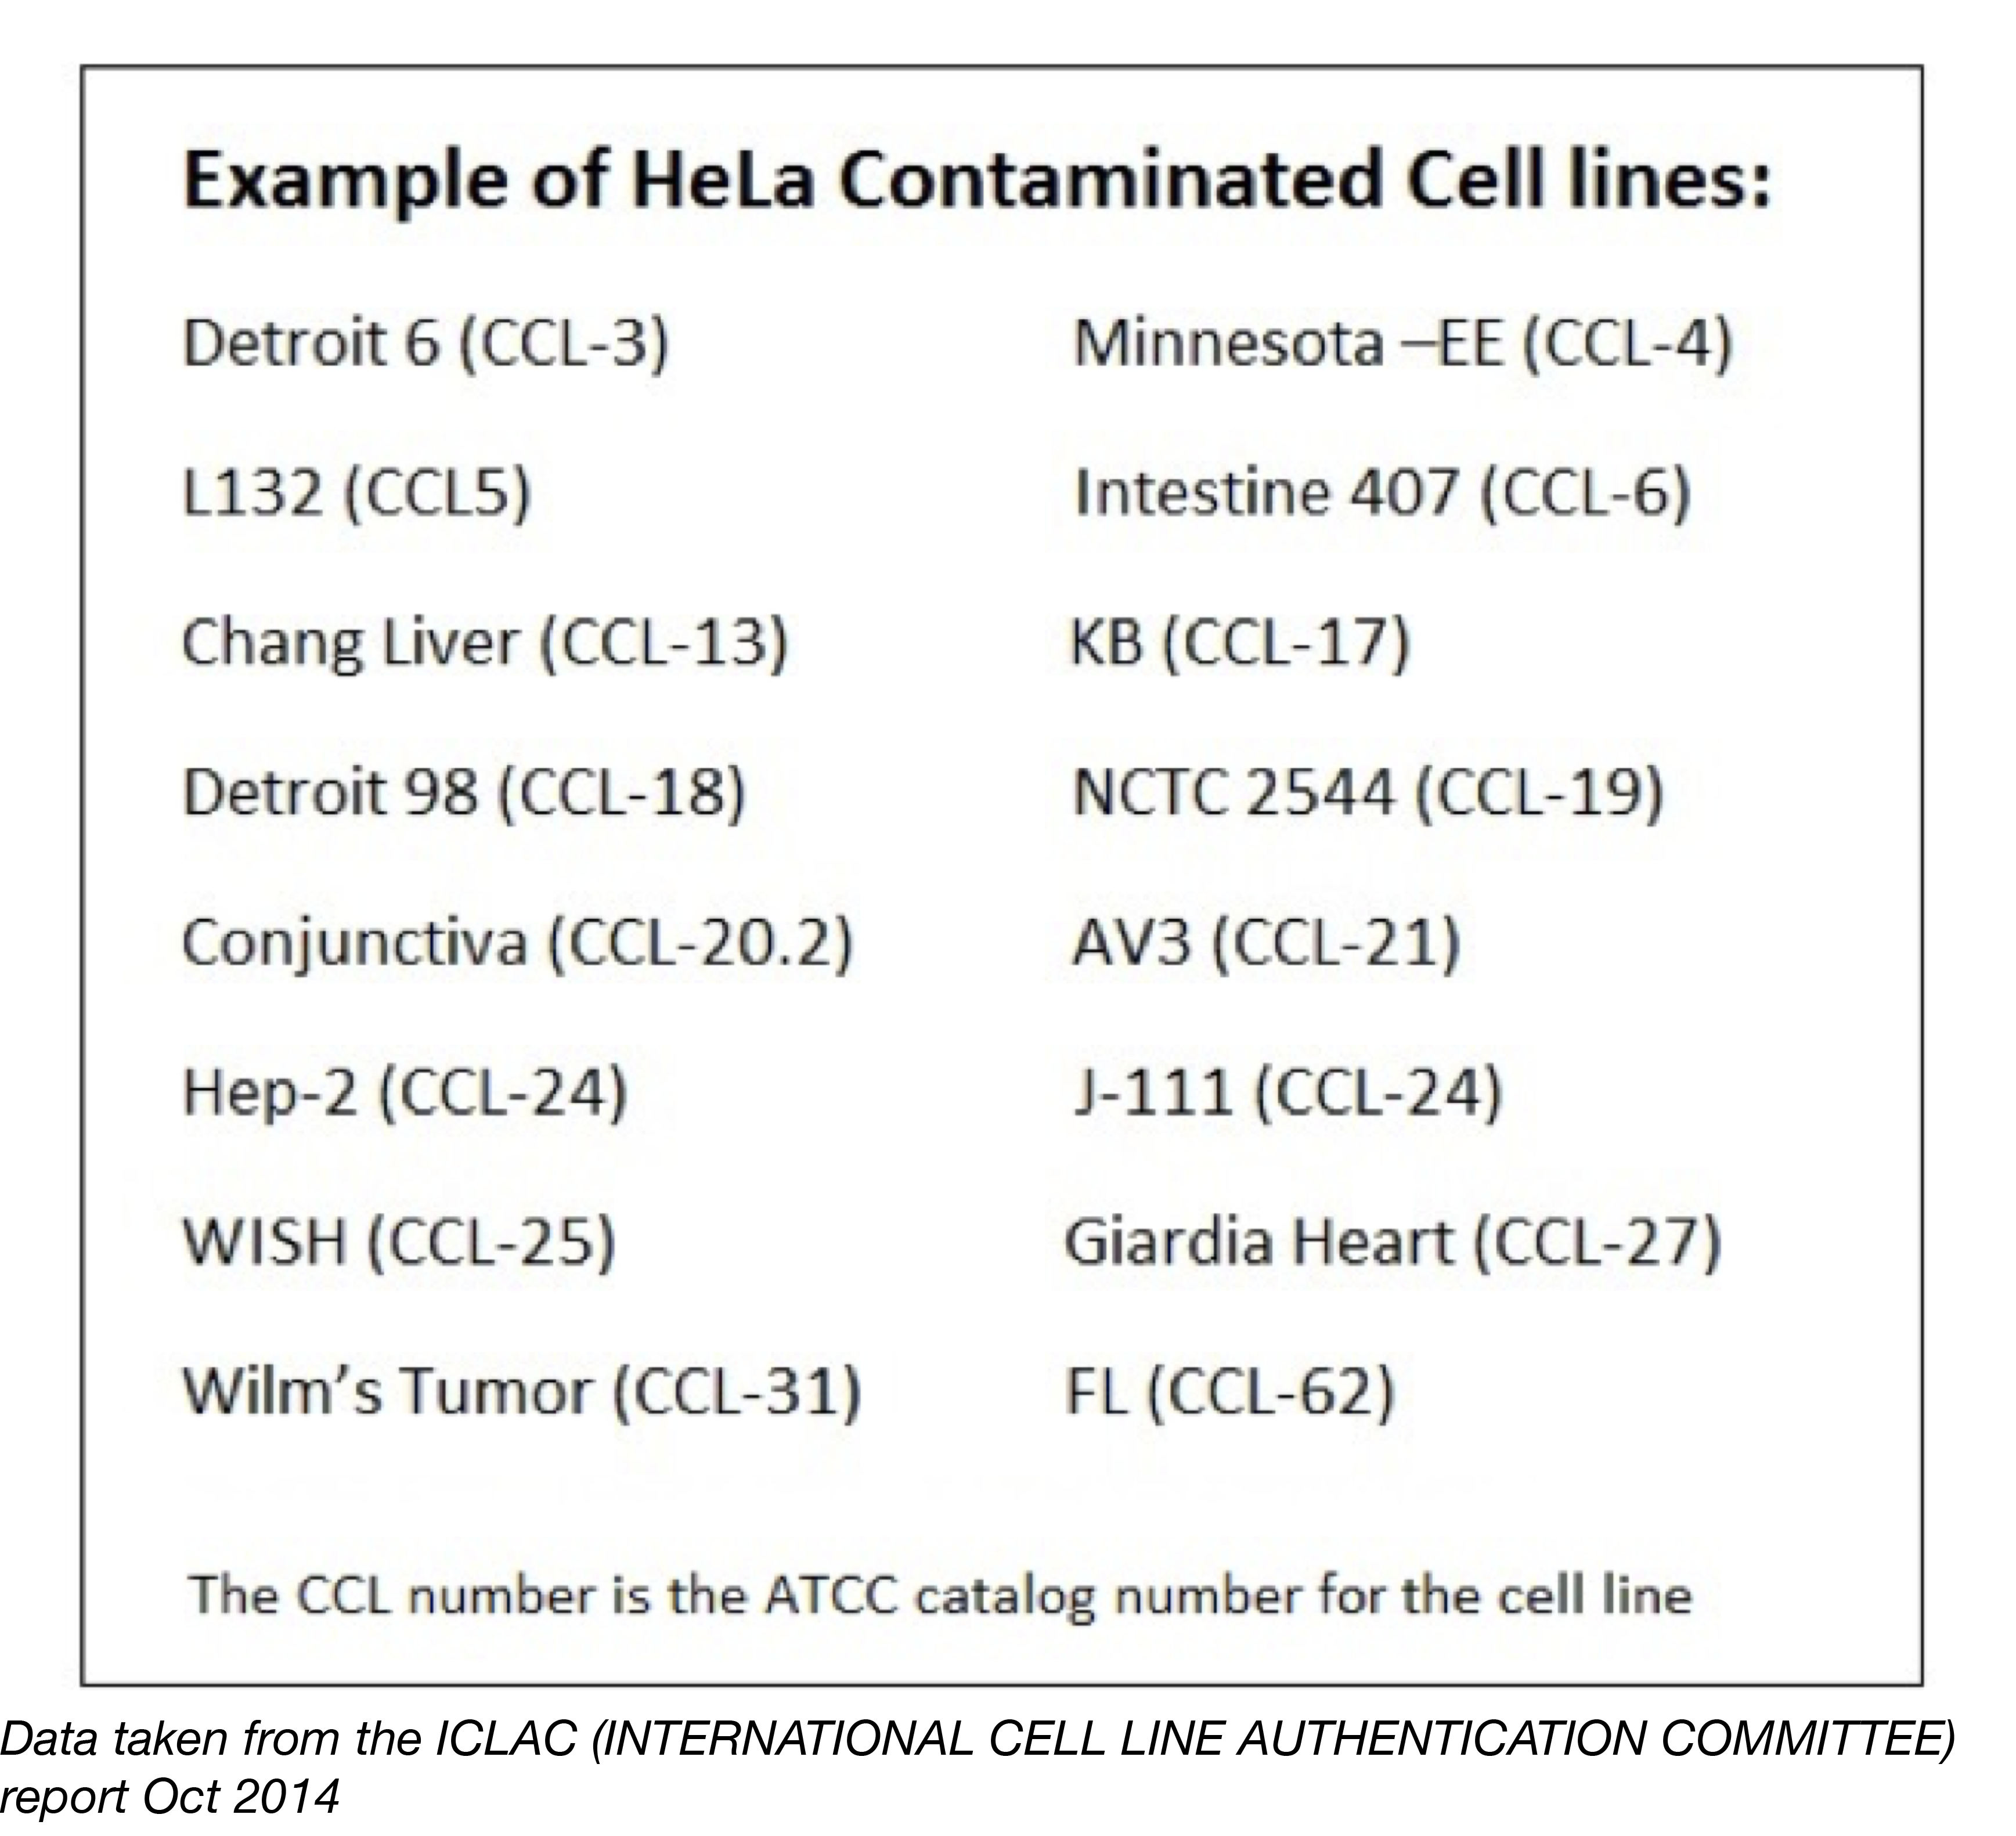 List of HeLa Contaminated Cell Lines